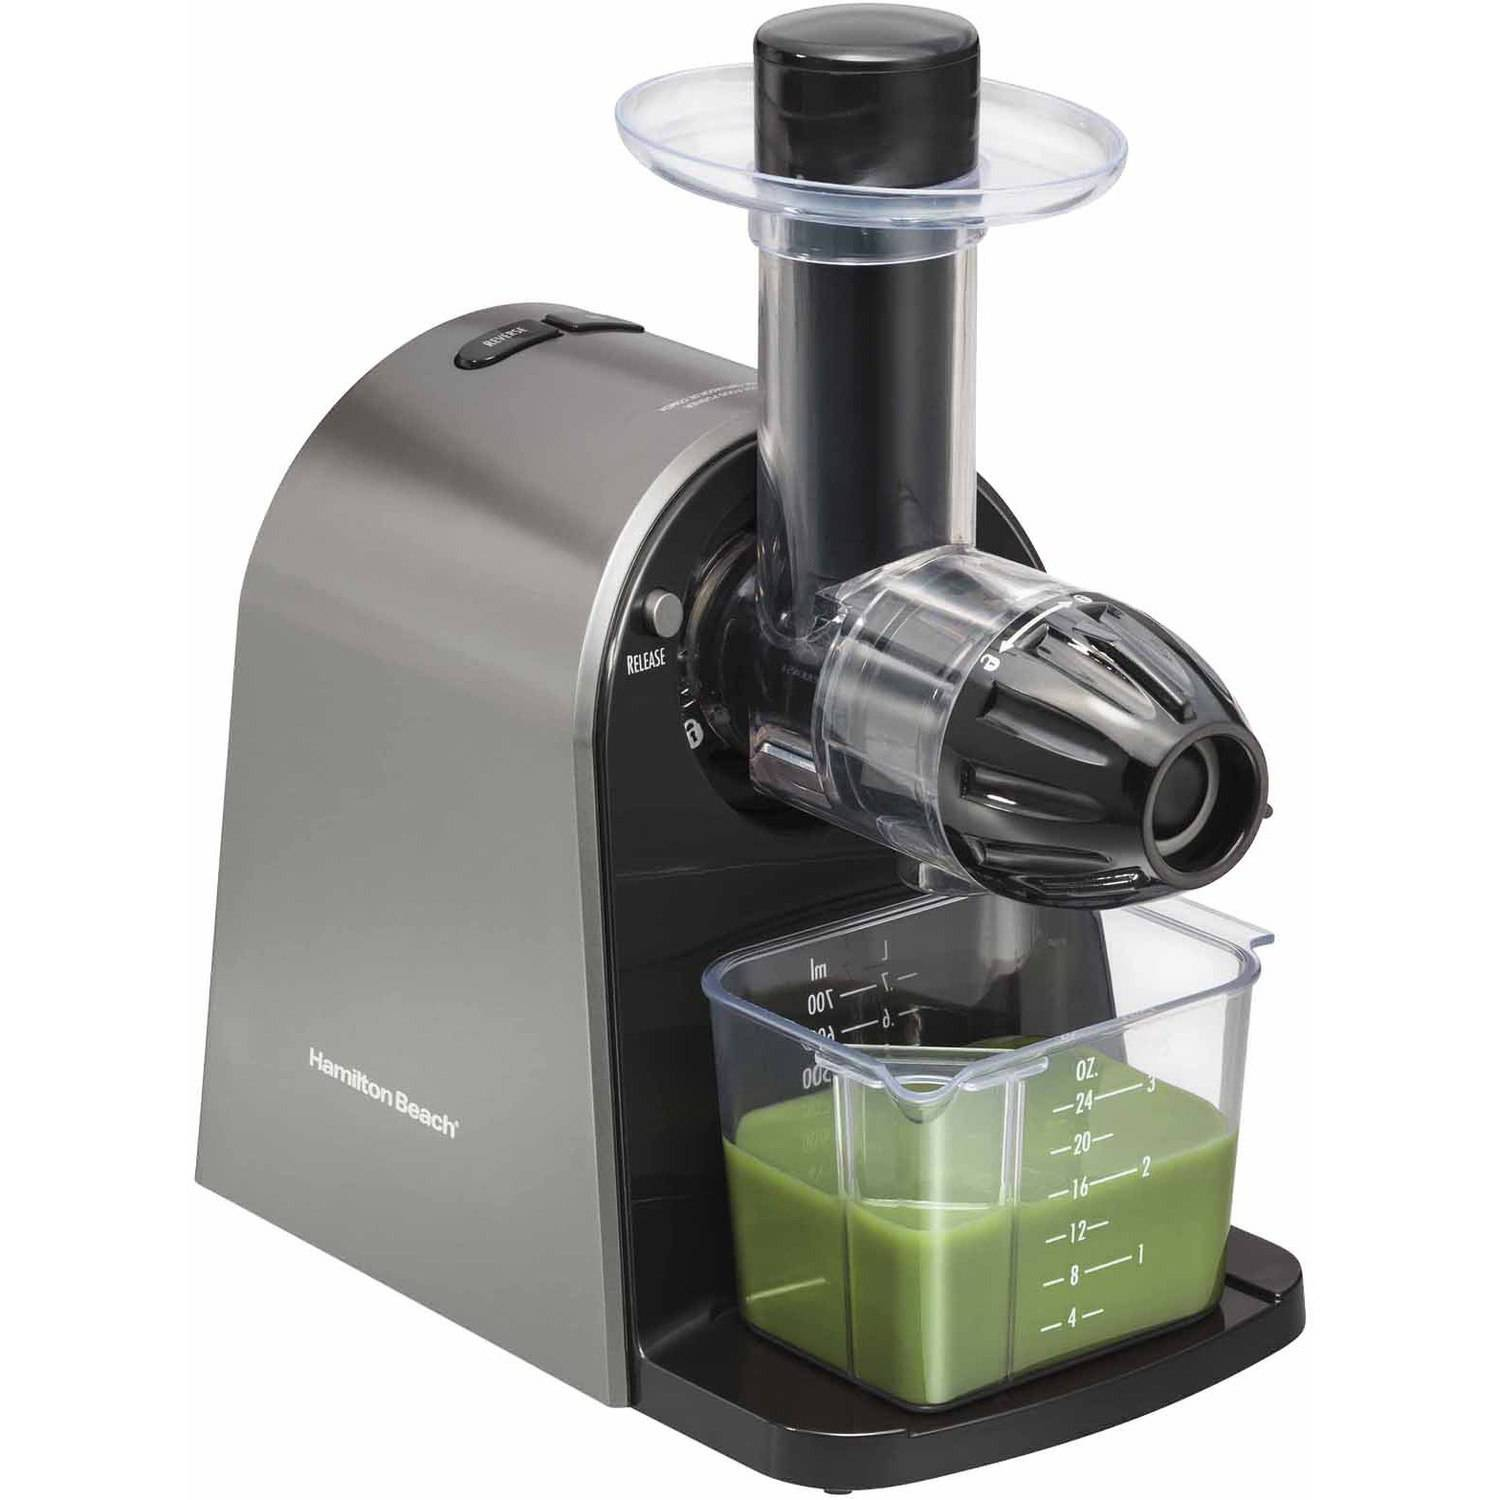 Best Slow Juicer Machines : Cold Press Juicer Machine - Masticating Juicer Slow Juice ...